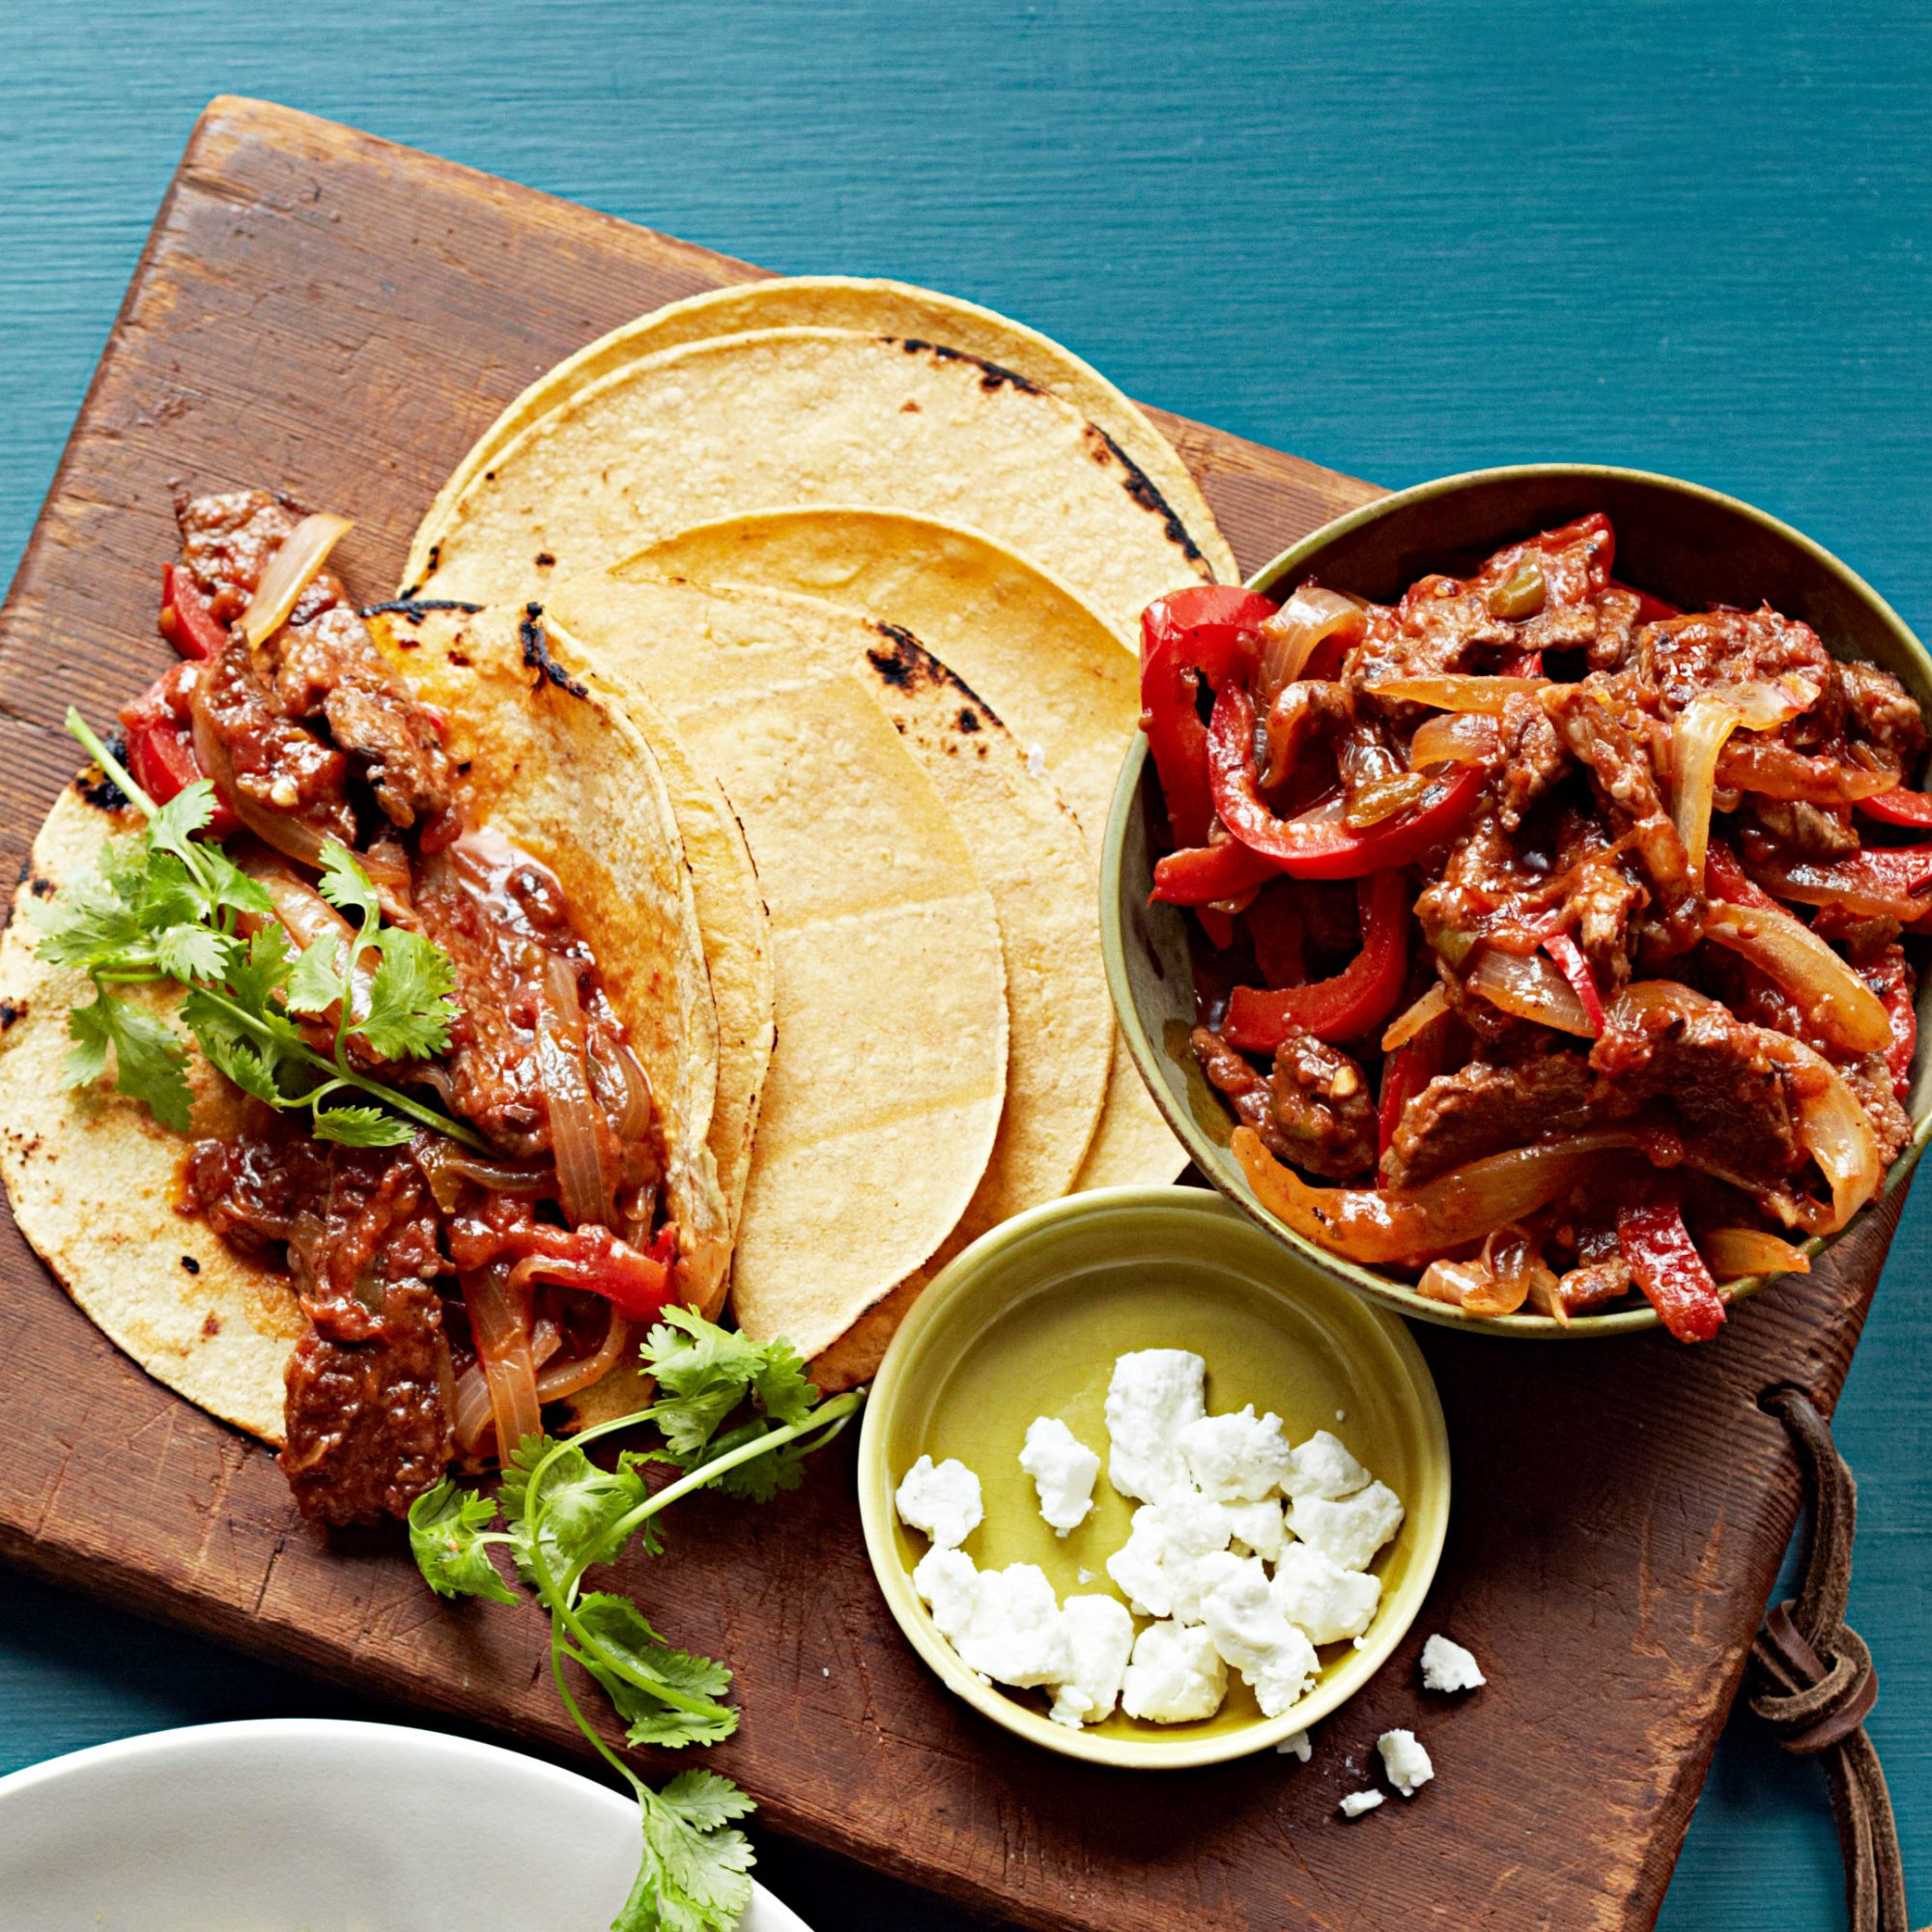 Spicy Beef Fajitas with Goat Cheese